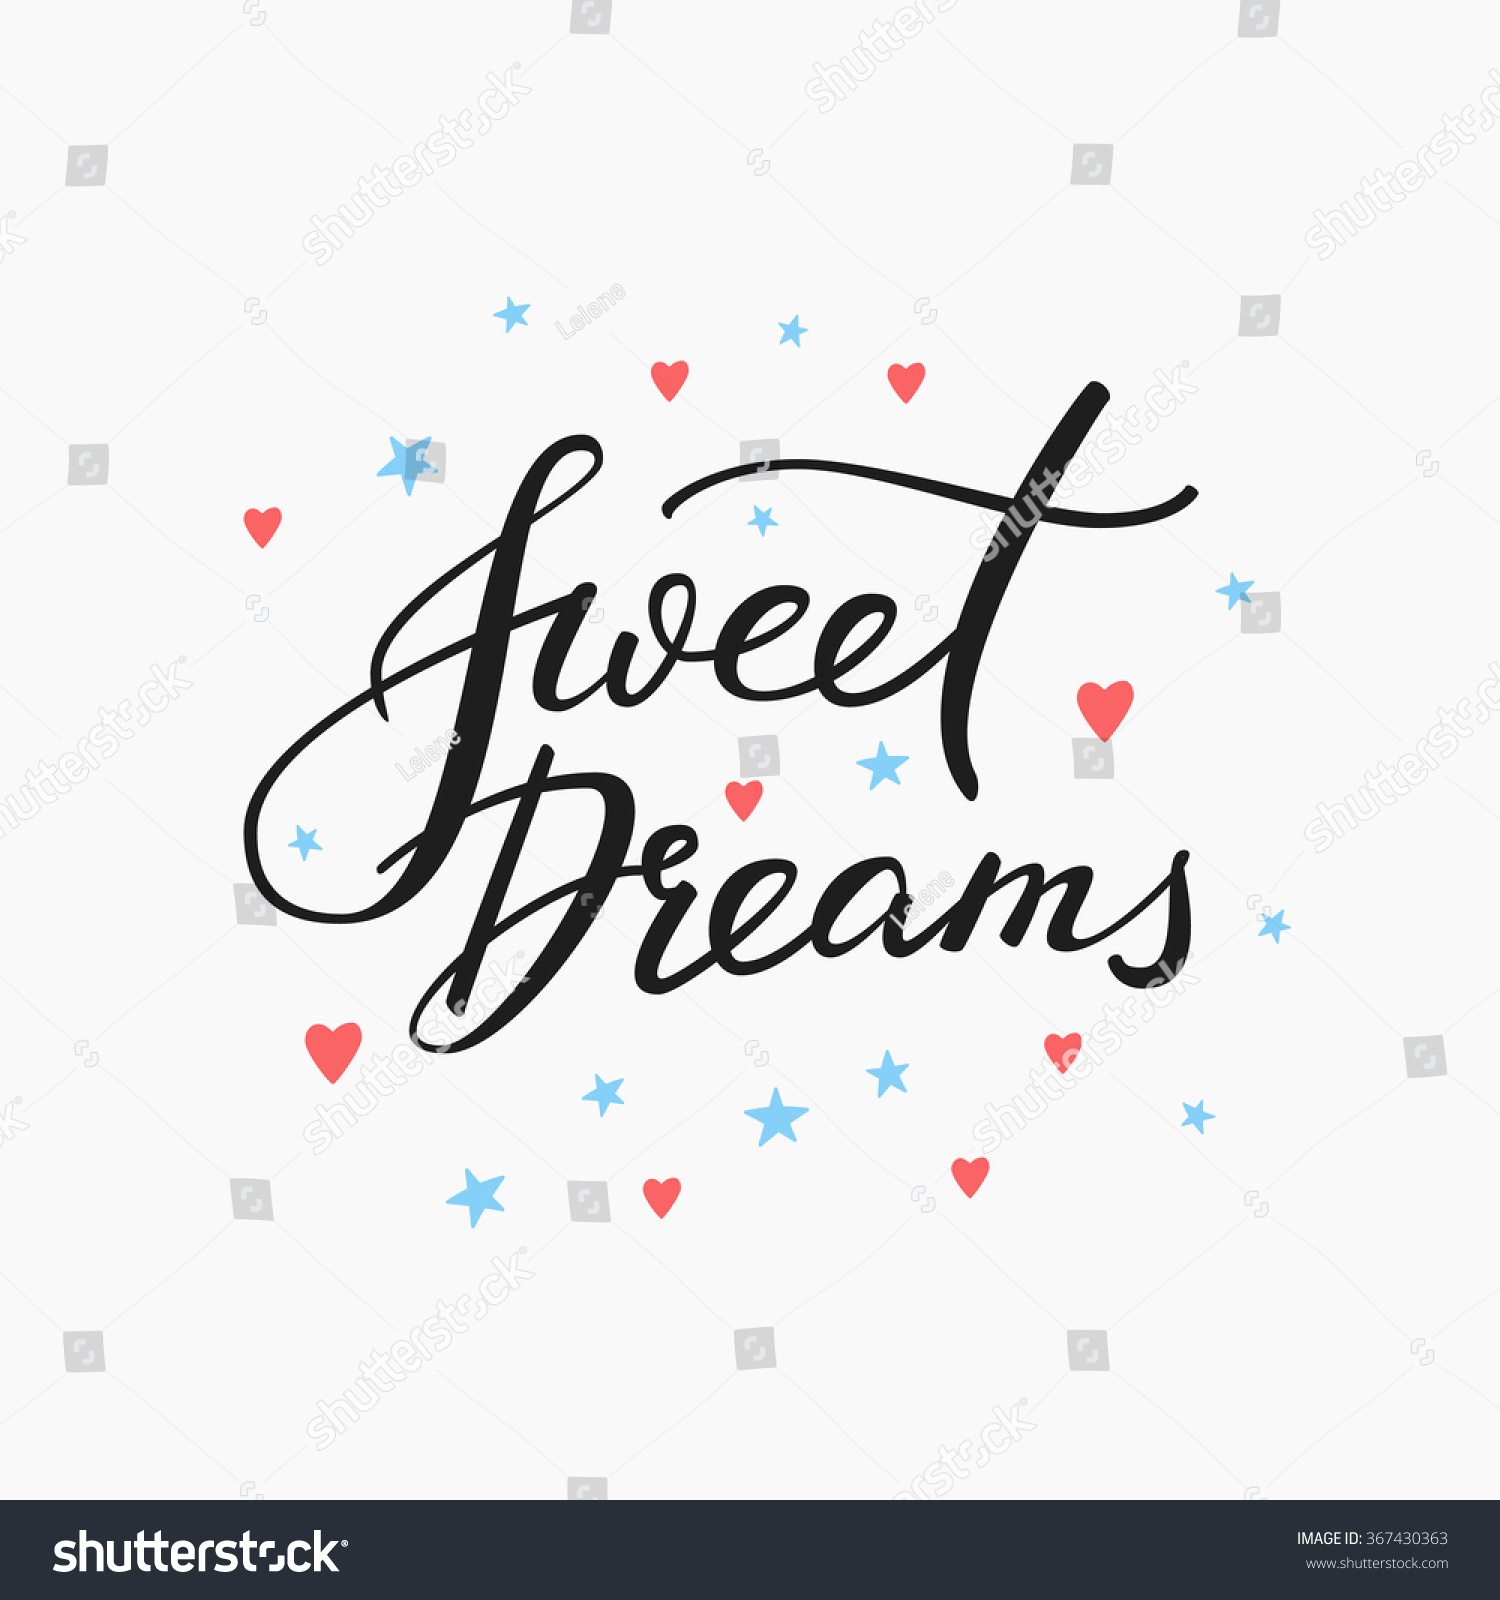 Good night lettering motivational quote sweet stock vector